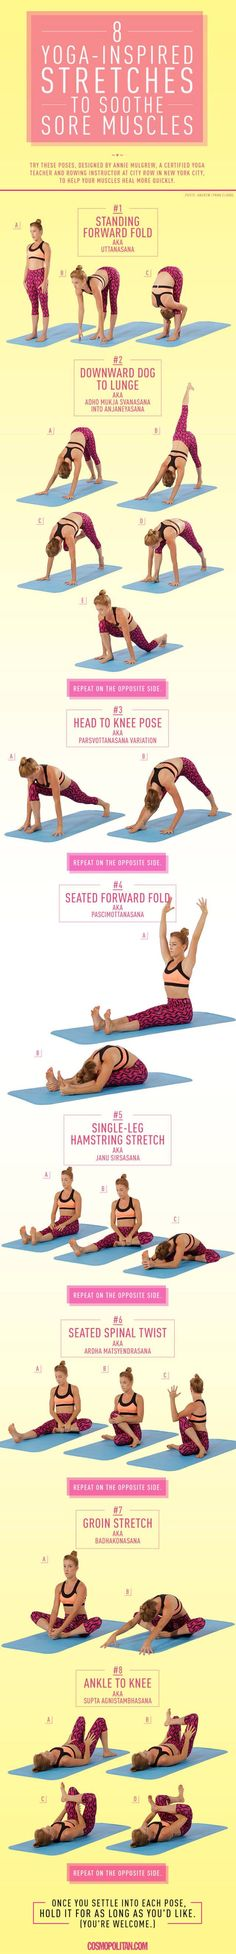 8 Yoga-Inspired Poses to Soothe Sore Muscles